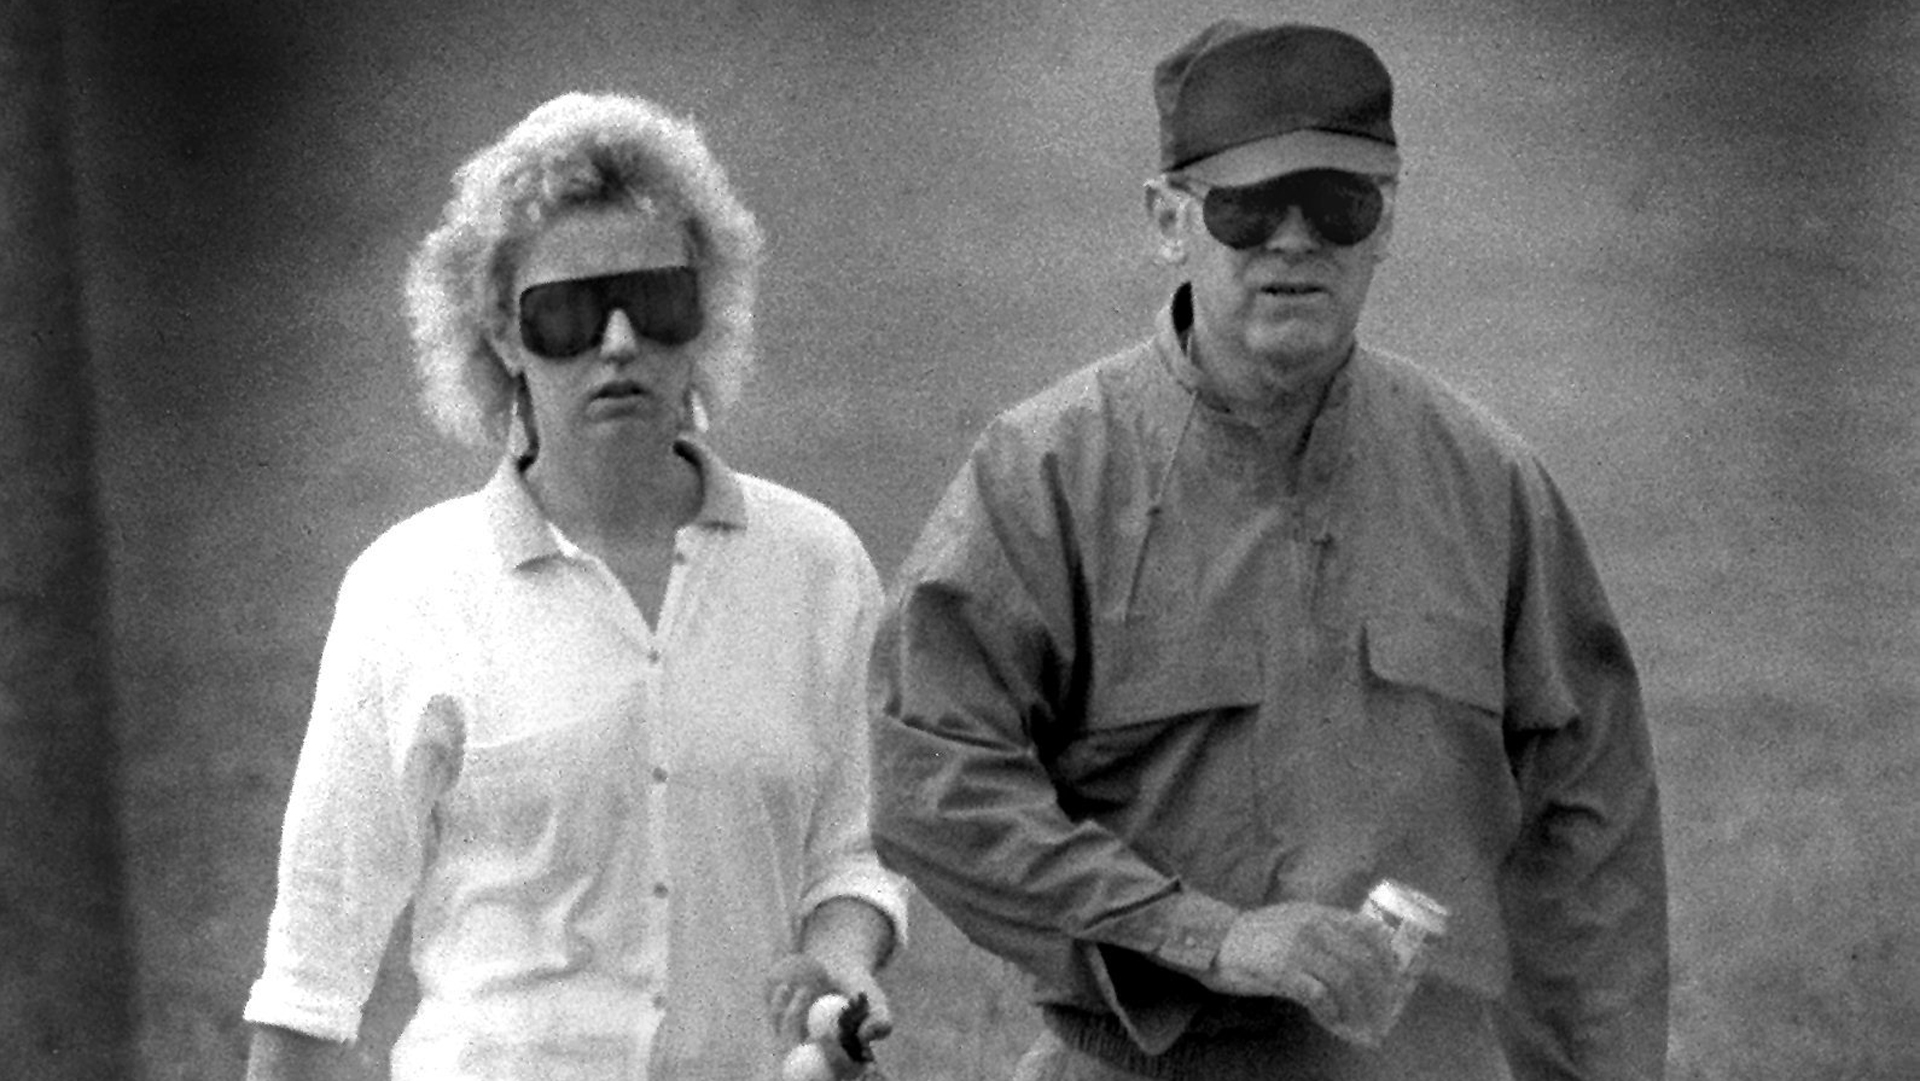 HowMobster Whitey Bulger Evaded Law Enforcement for So Long